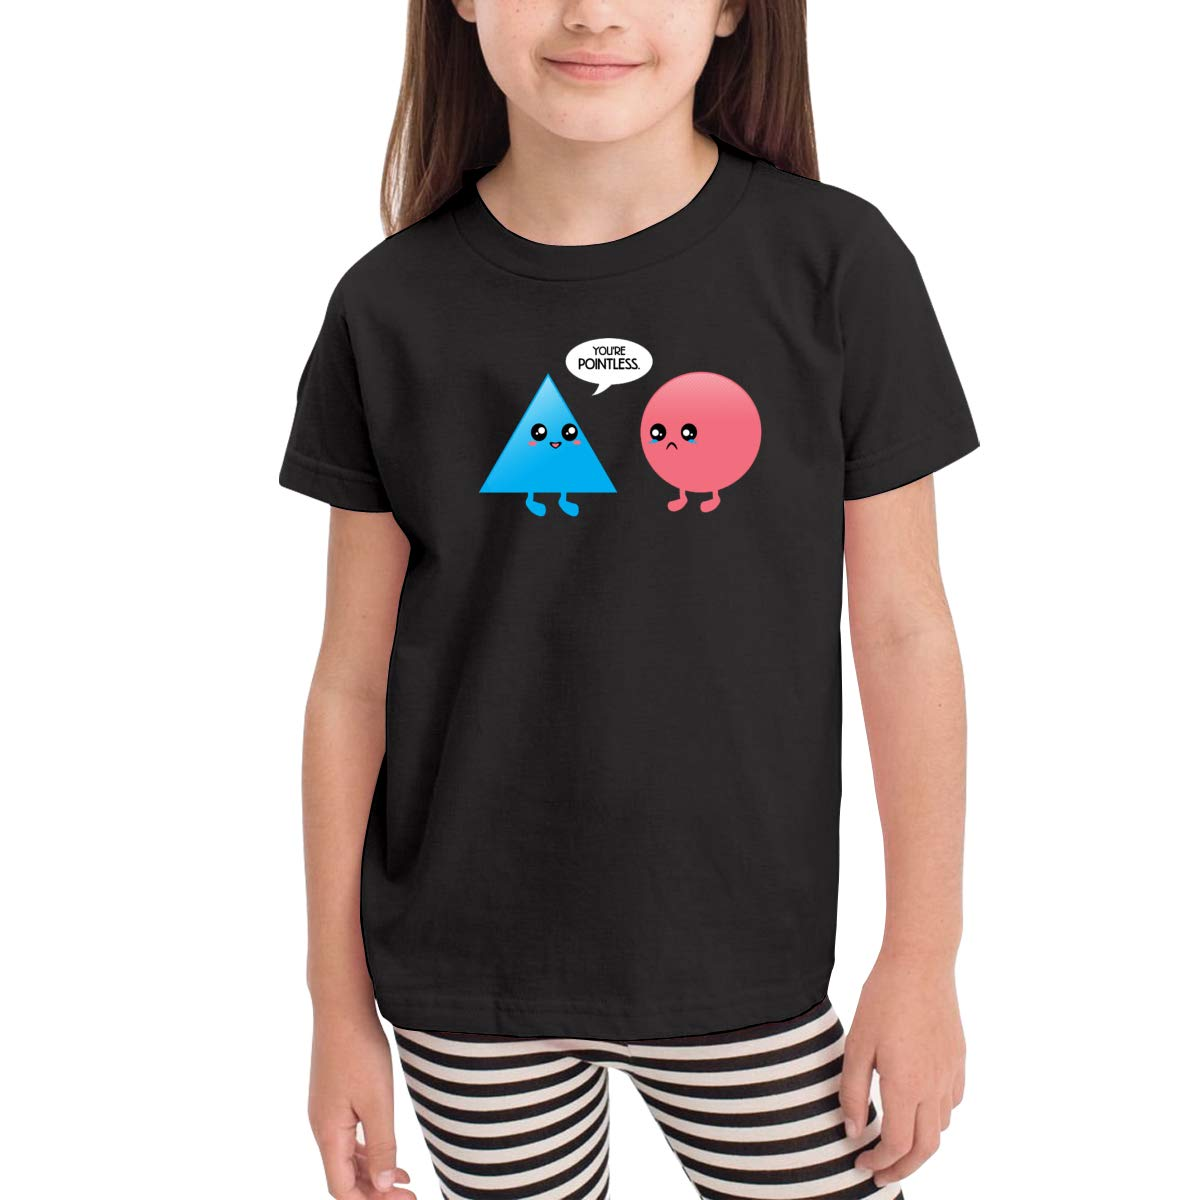 Onlybabycare Youre Pointless Black Cotton T Shirt Lightweight Breathable Solid Tee for Toddler Boys Girls Kids